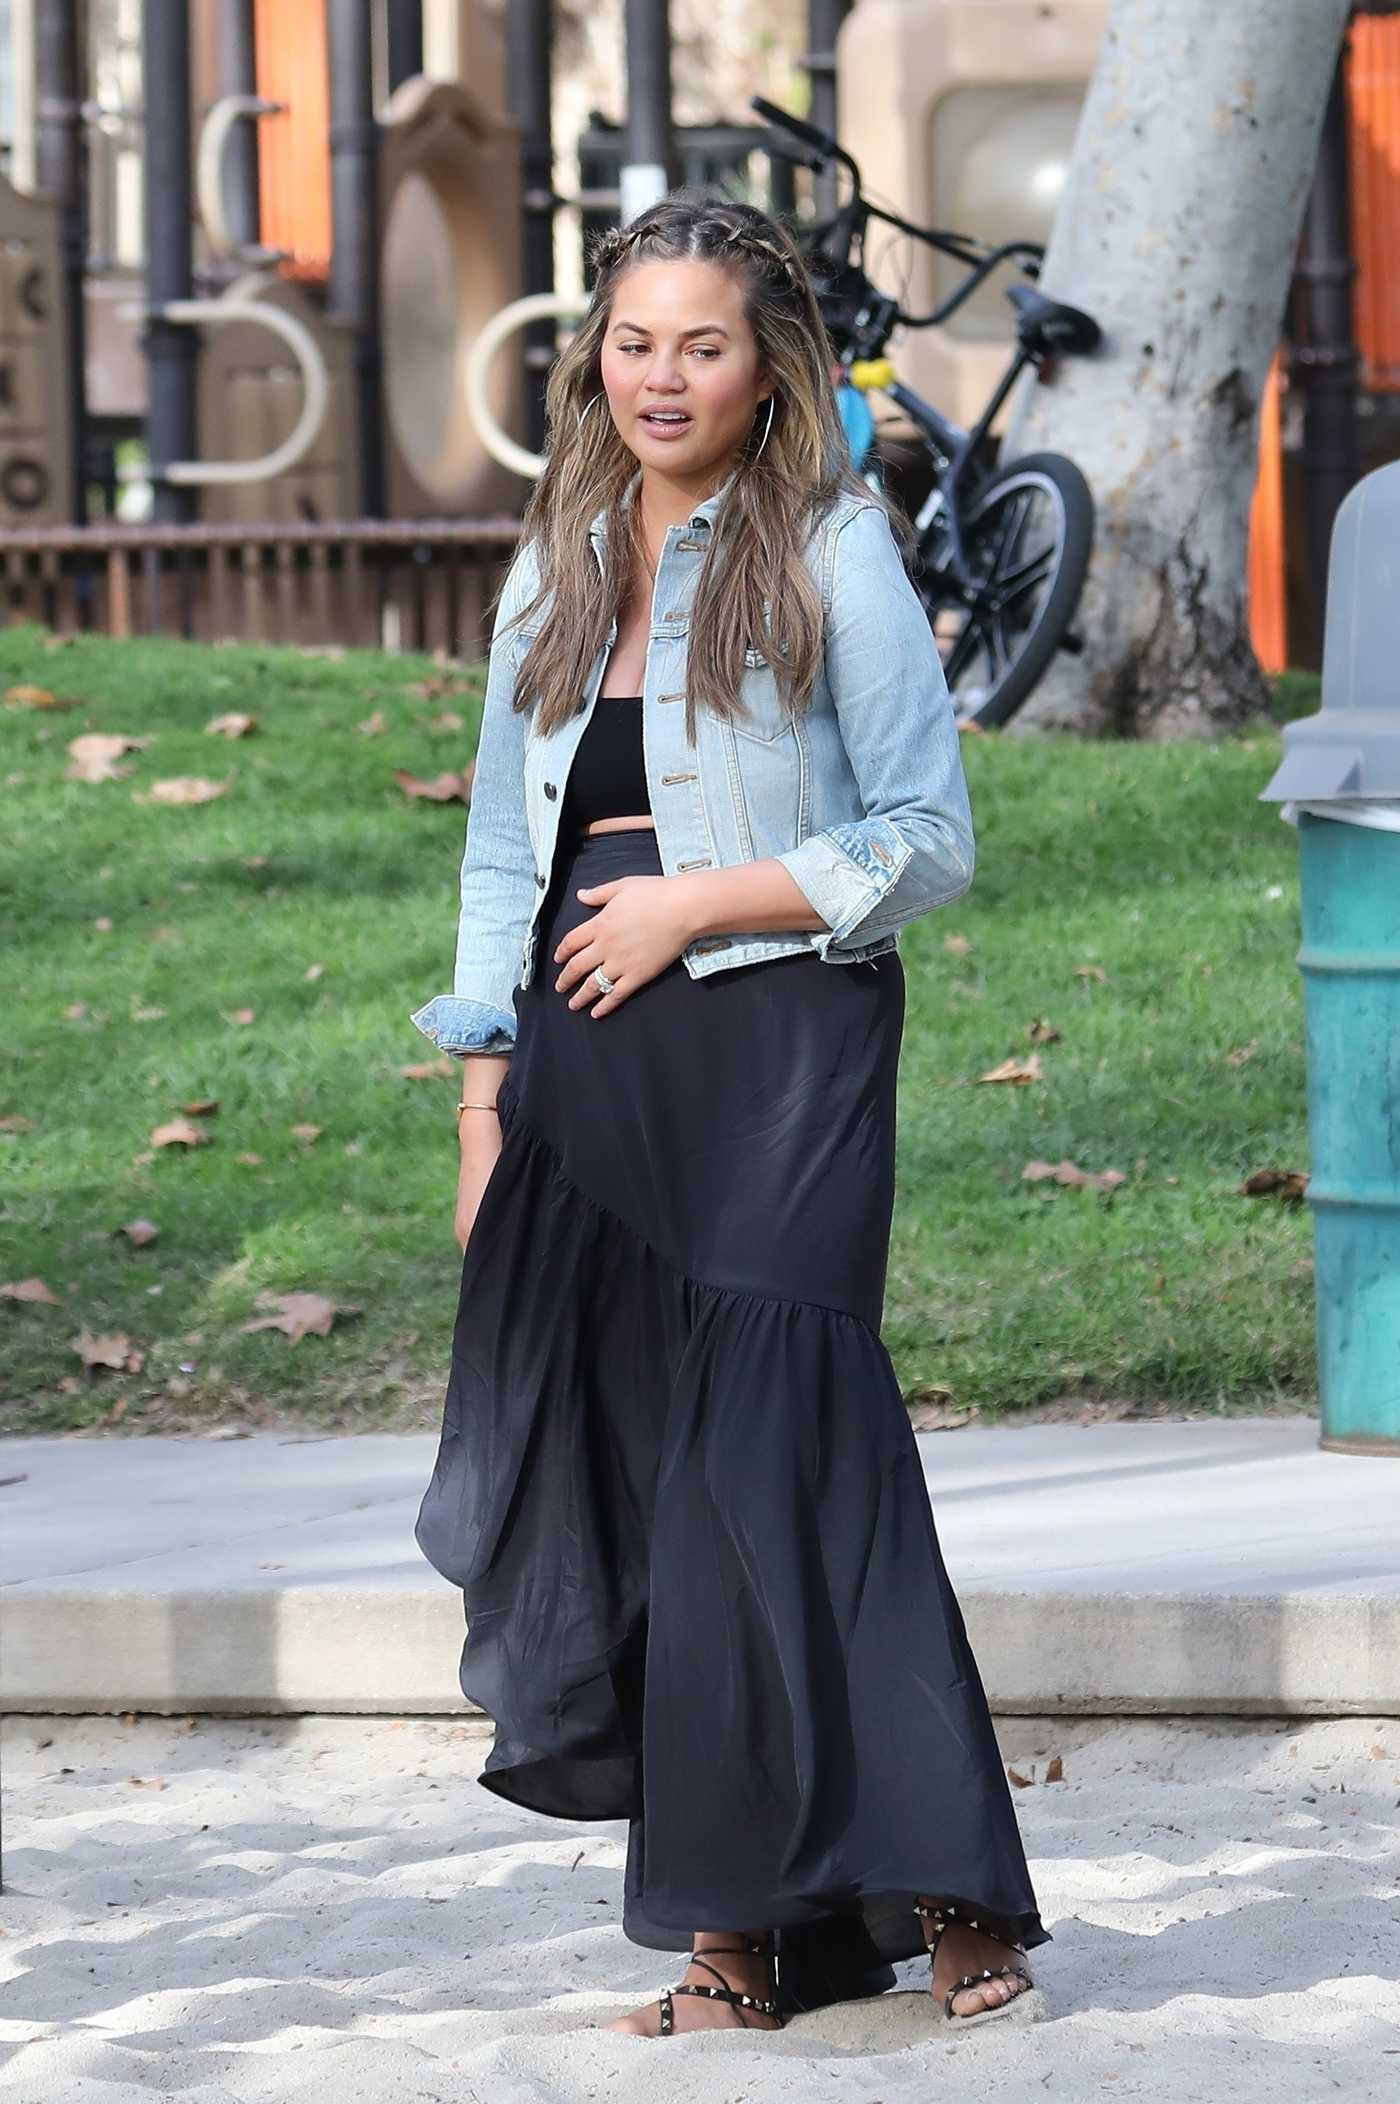 Chrissy Teigen Was Spotted at the Park in Los Angeles 01/05/2018